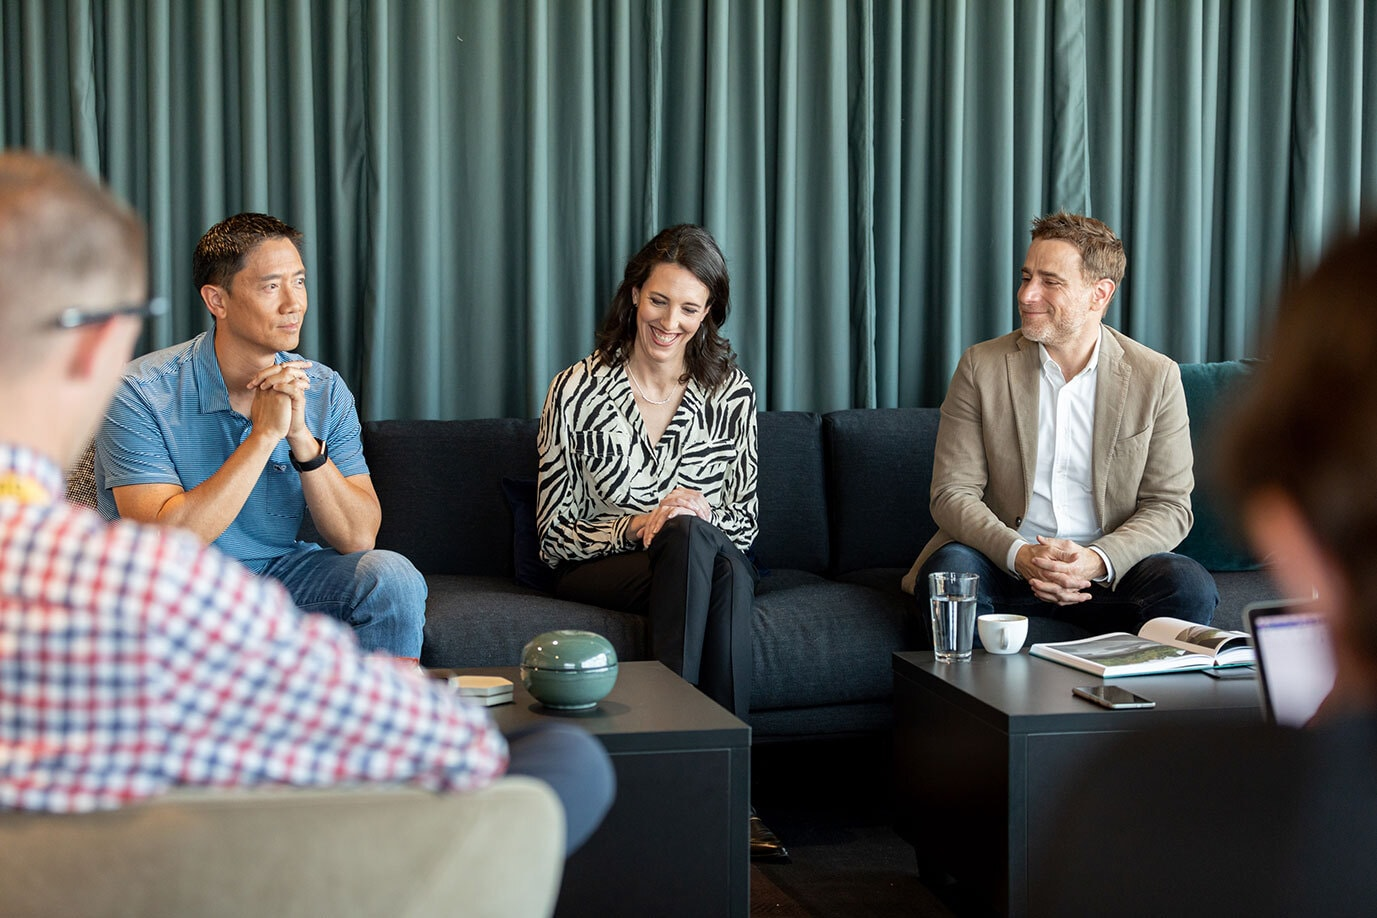 Slack executives (Robby Kwok, VP of People; Ali Rayl, VP customer experience; Stewart Butterfiled, CEO) at the opening of Slack's new office in Denver.